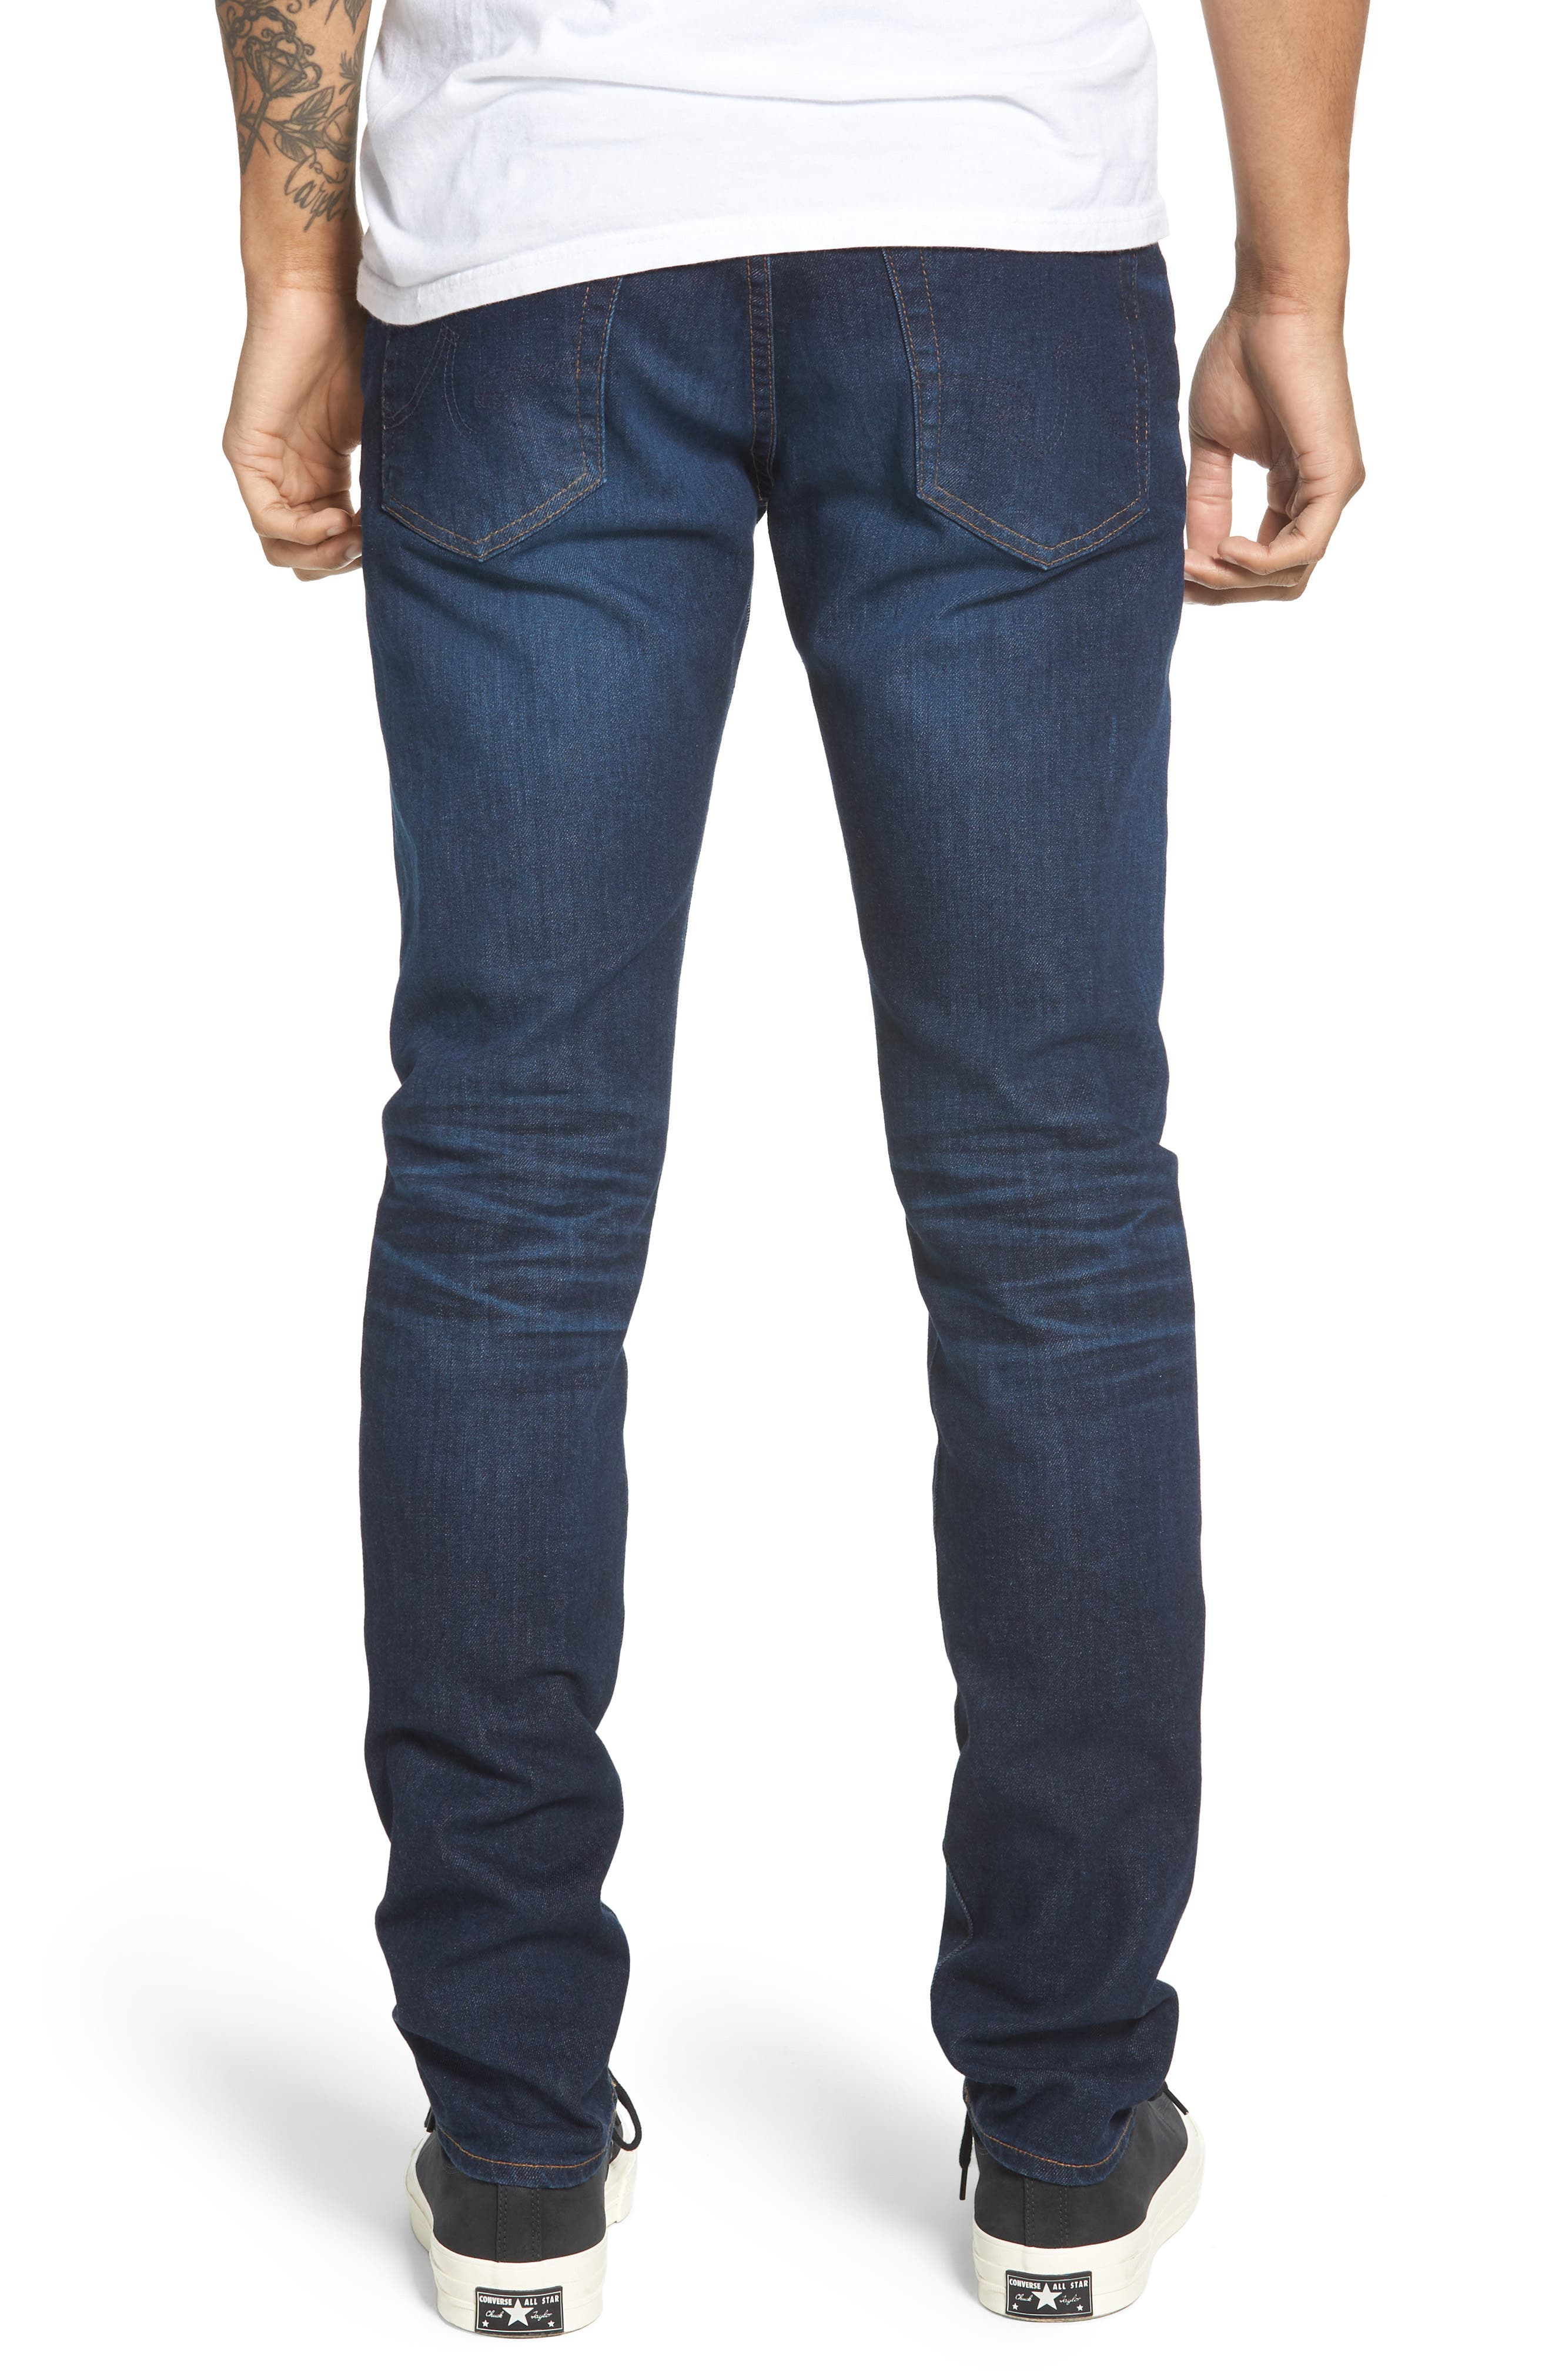 Dylan Skinny Fit Jeans,                             Alternate thumbnail 2, color,                             5 YEARS